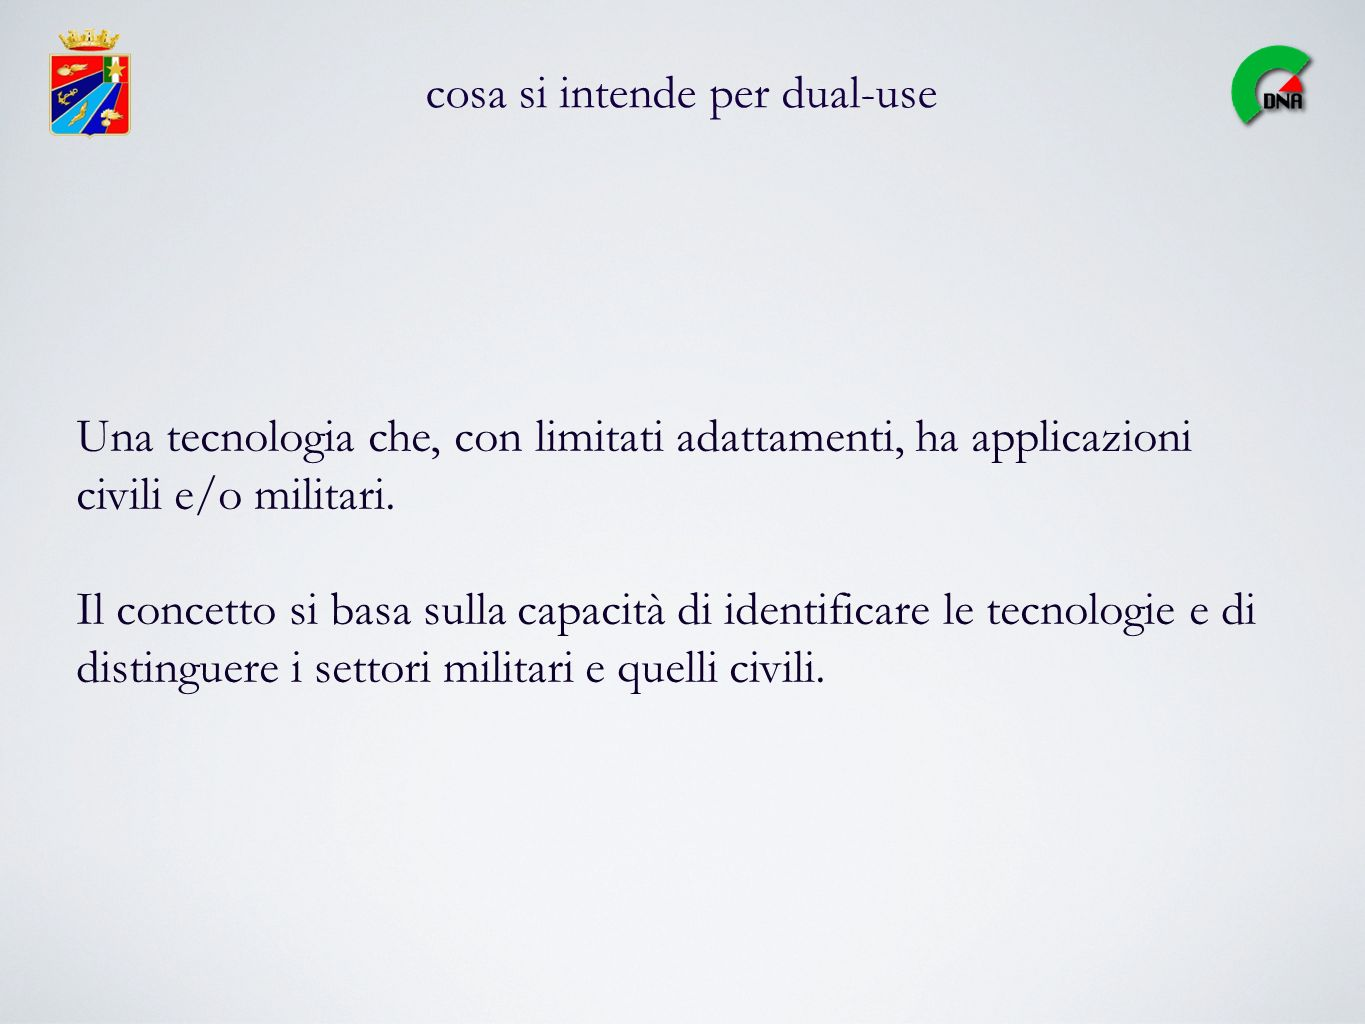 cosa si intende per dual-use